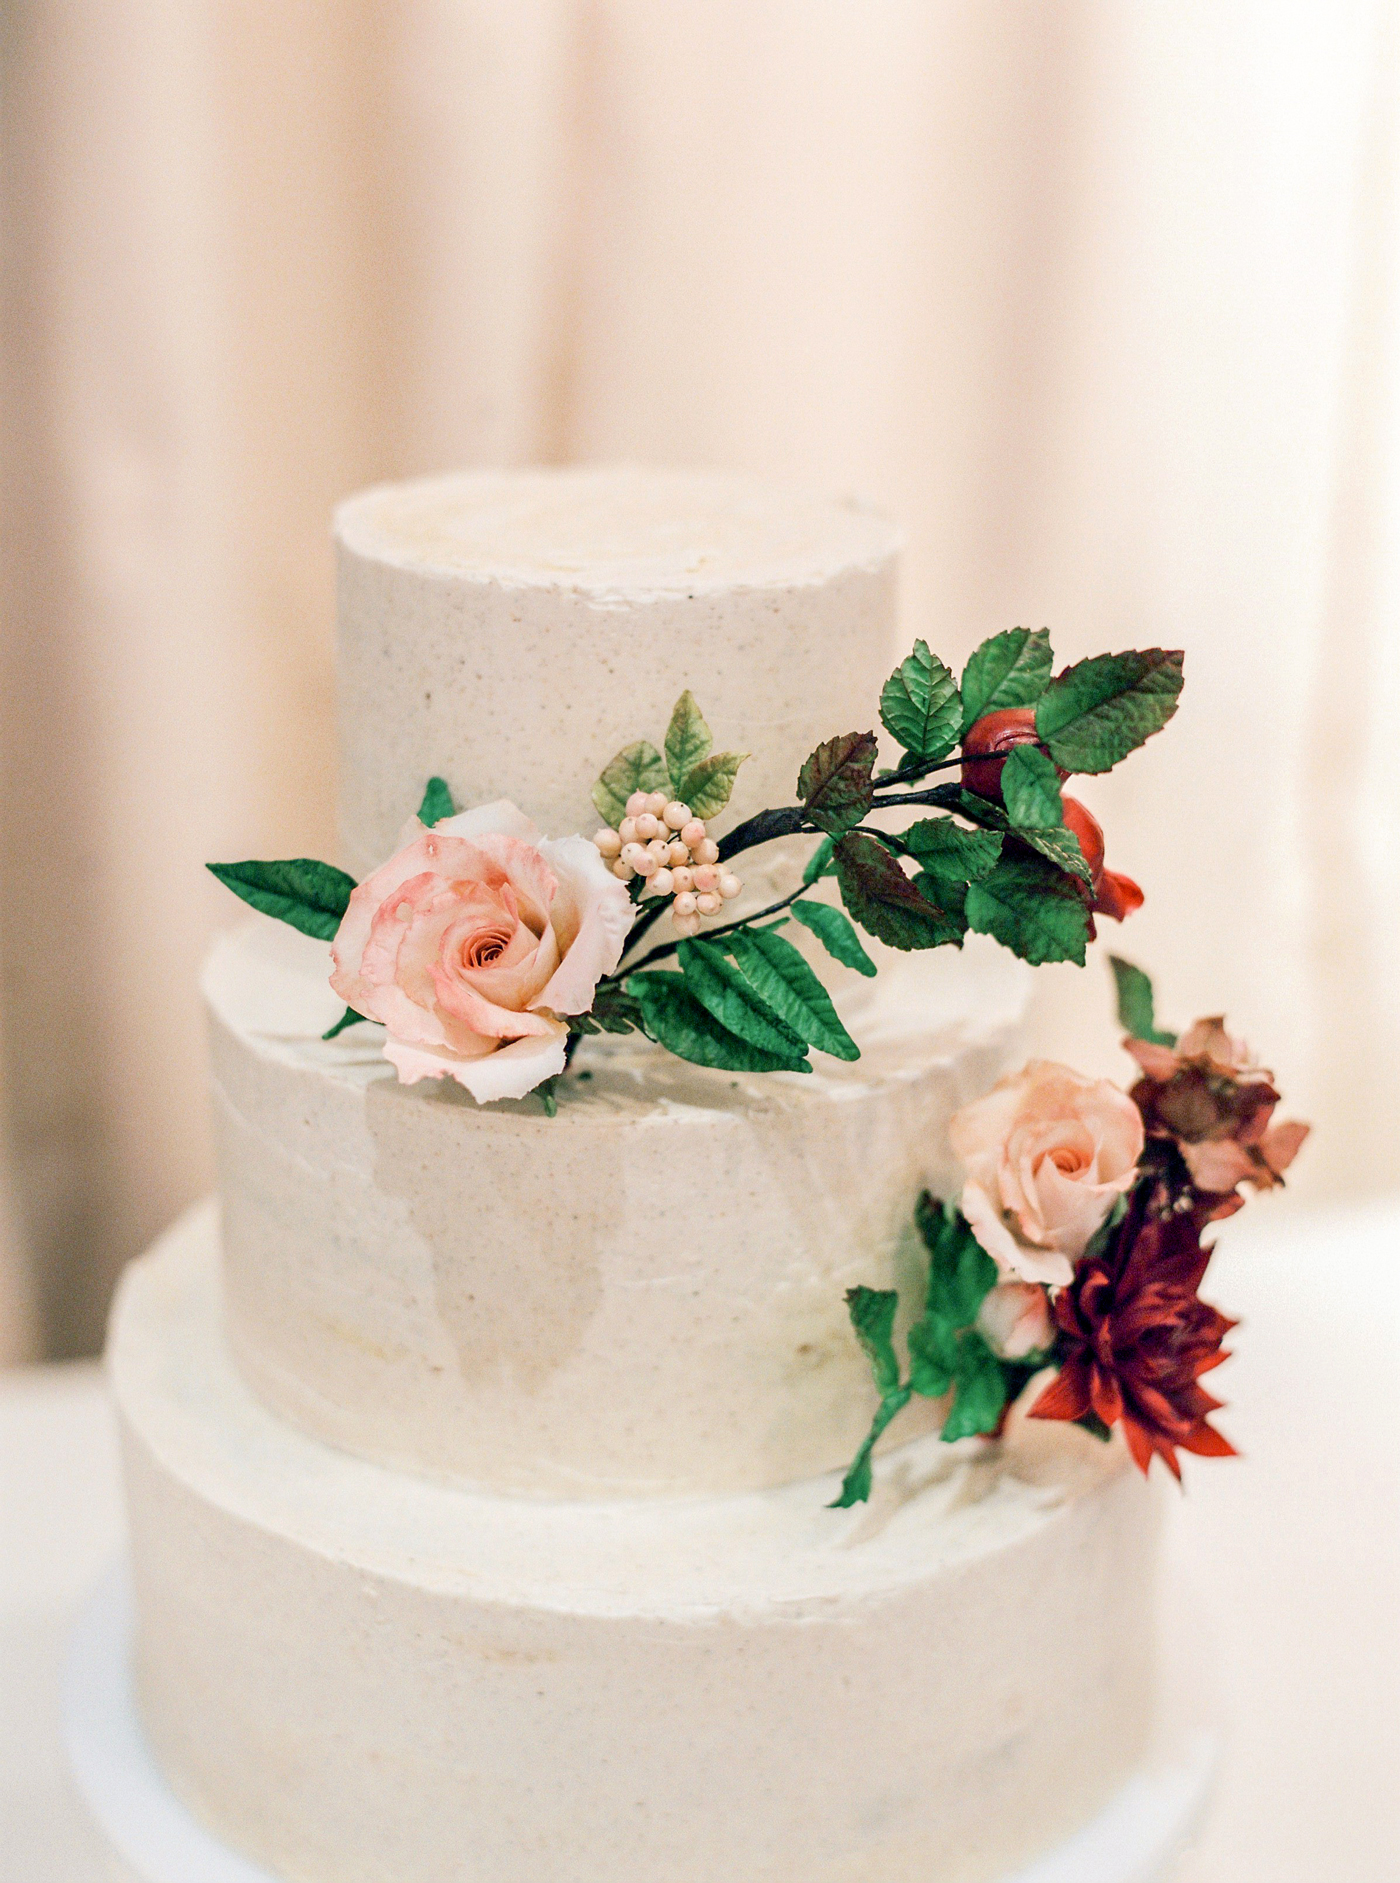 spiced vanilla bean buttercream iced three tier wedding cake with floral decor